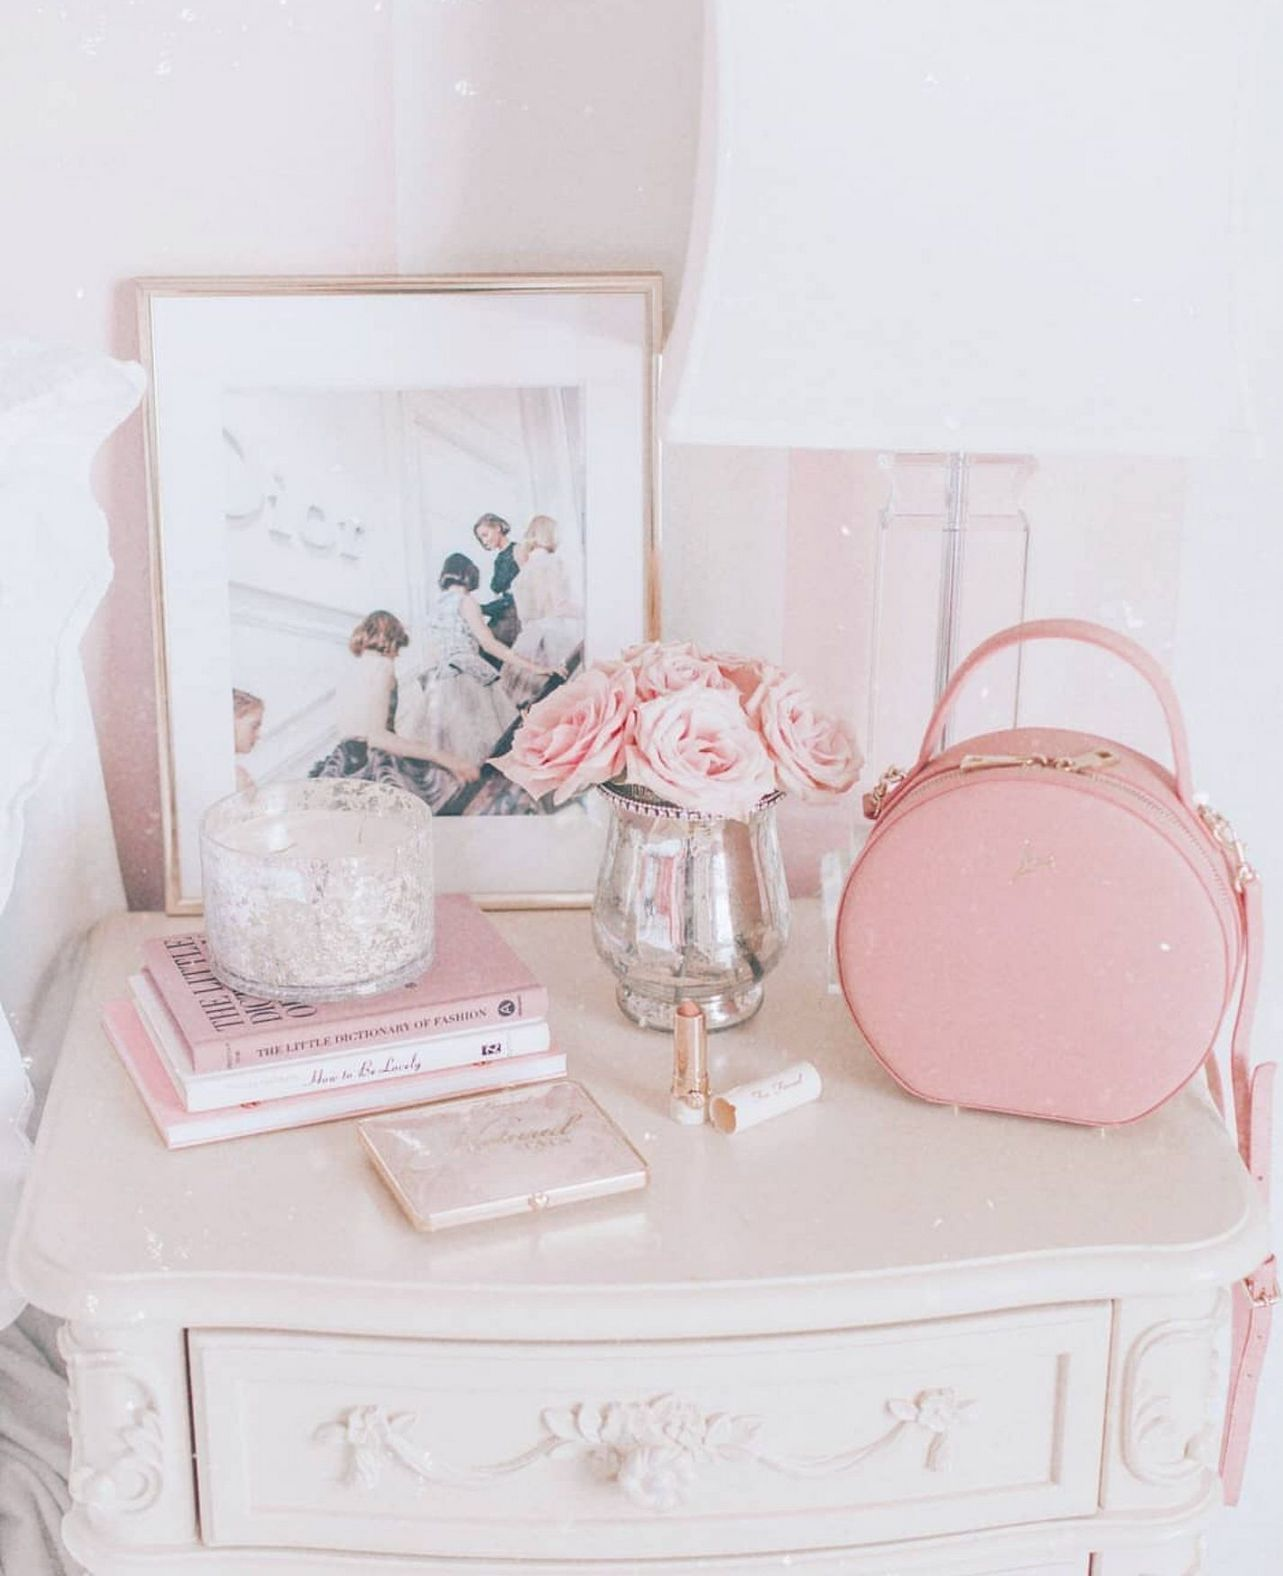 Pink Bedroom Ideas That Can Be Pretty And Peaceful Or: 40+ Beautiful Christmas Decorations Bedroom Girly Ideas